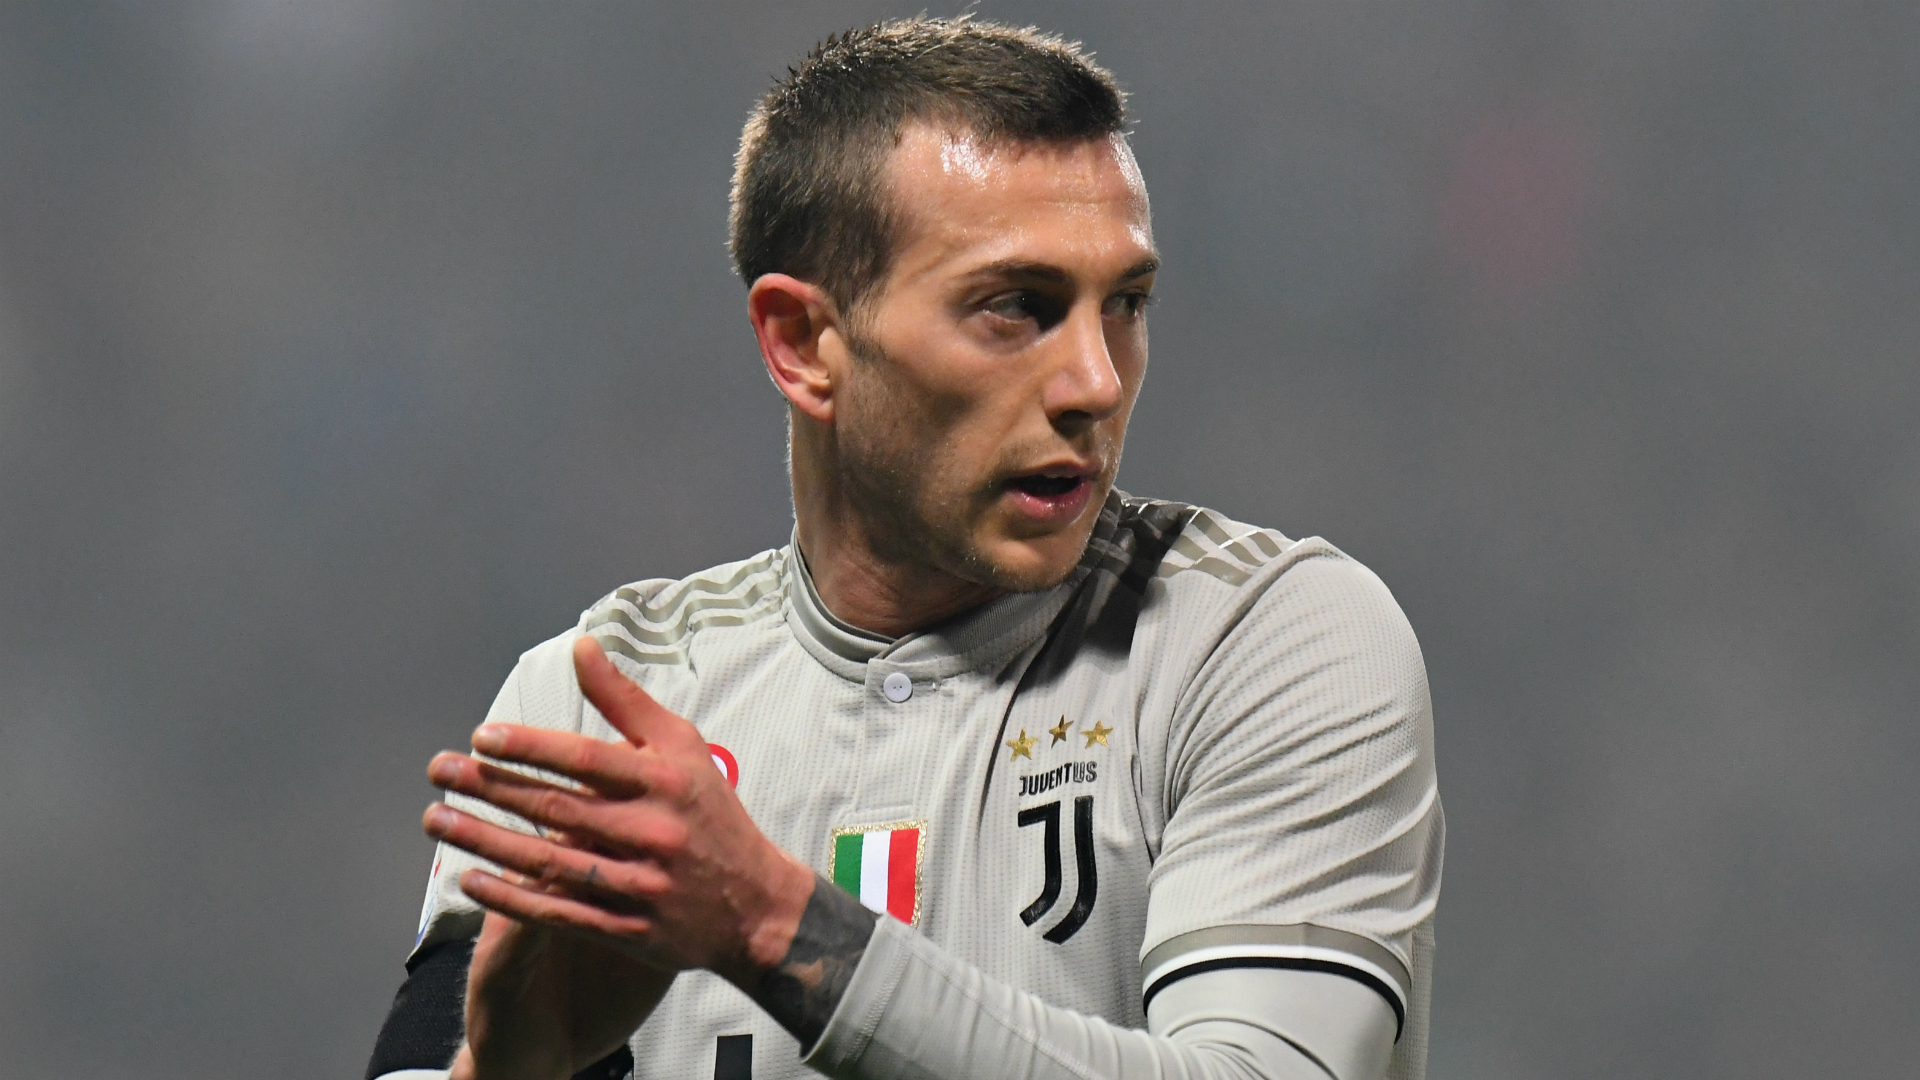 Ajax v Juventus: Why Bernardeschi is fast becoming Allegri's most important weapon